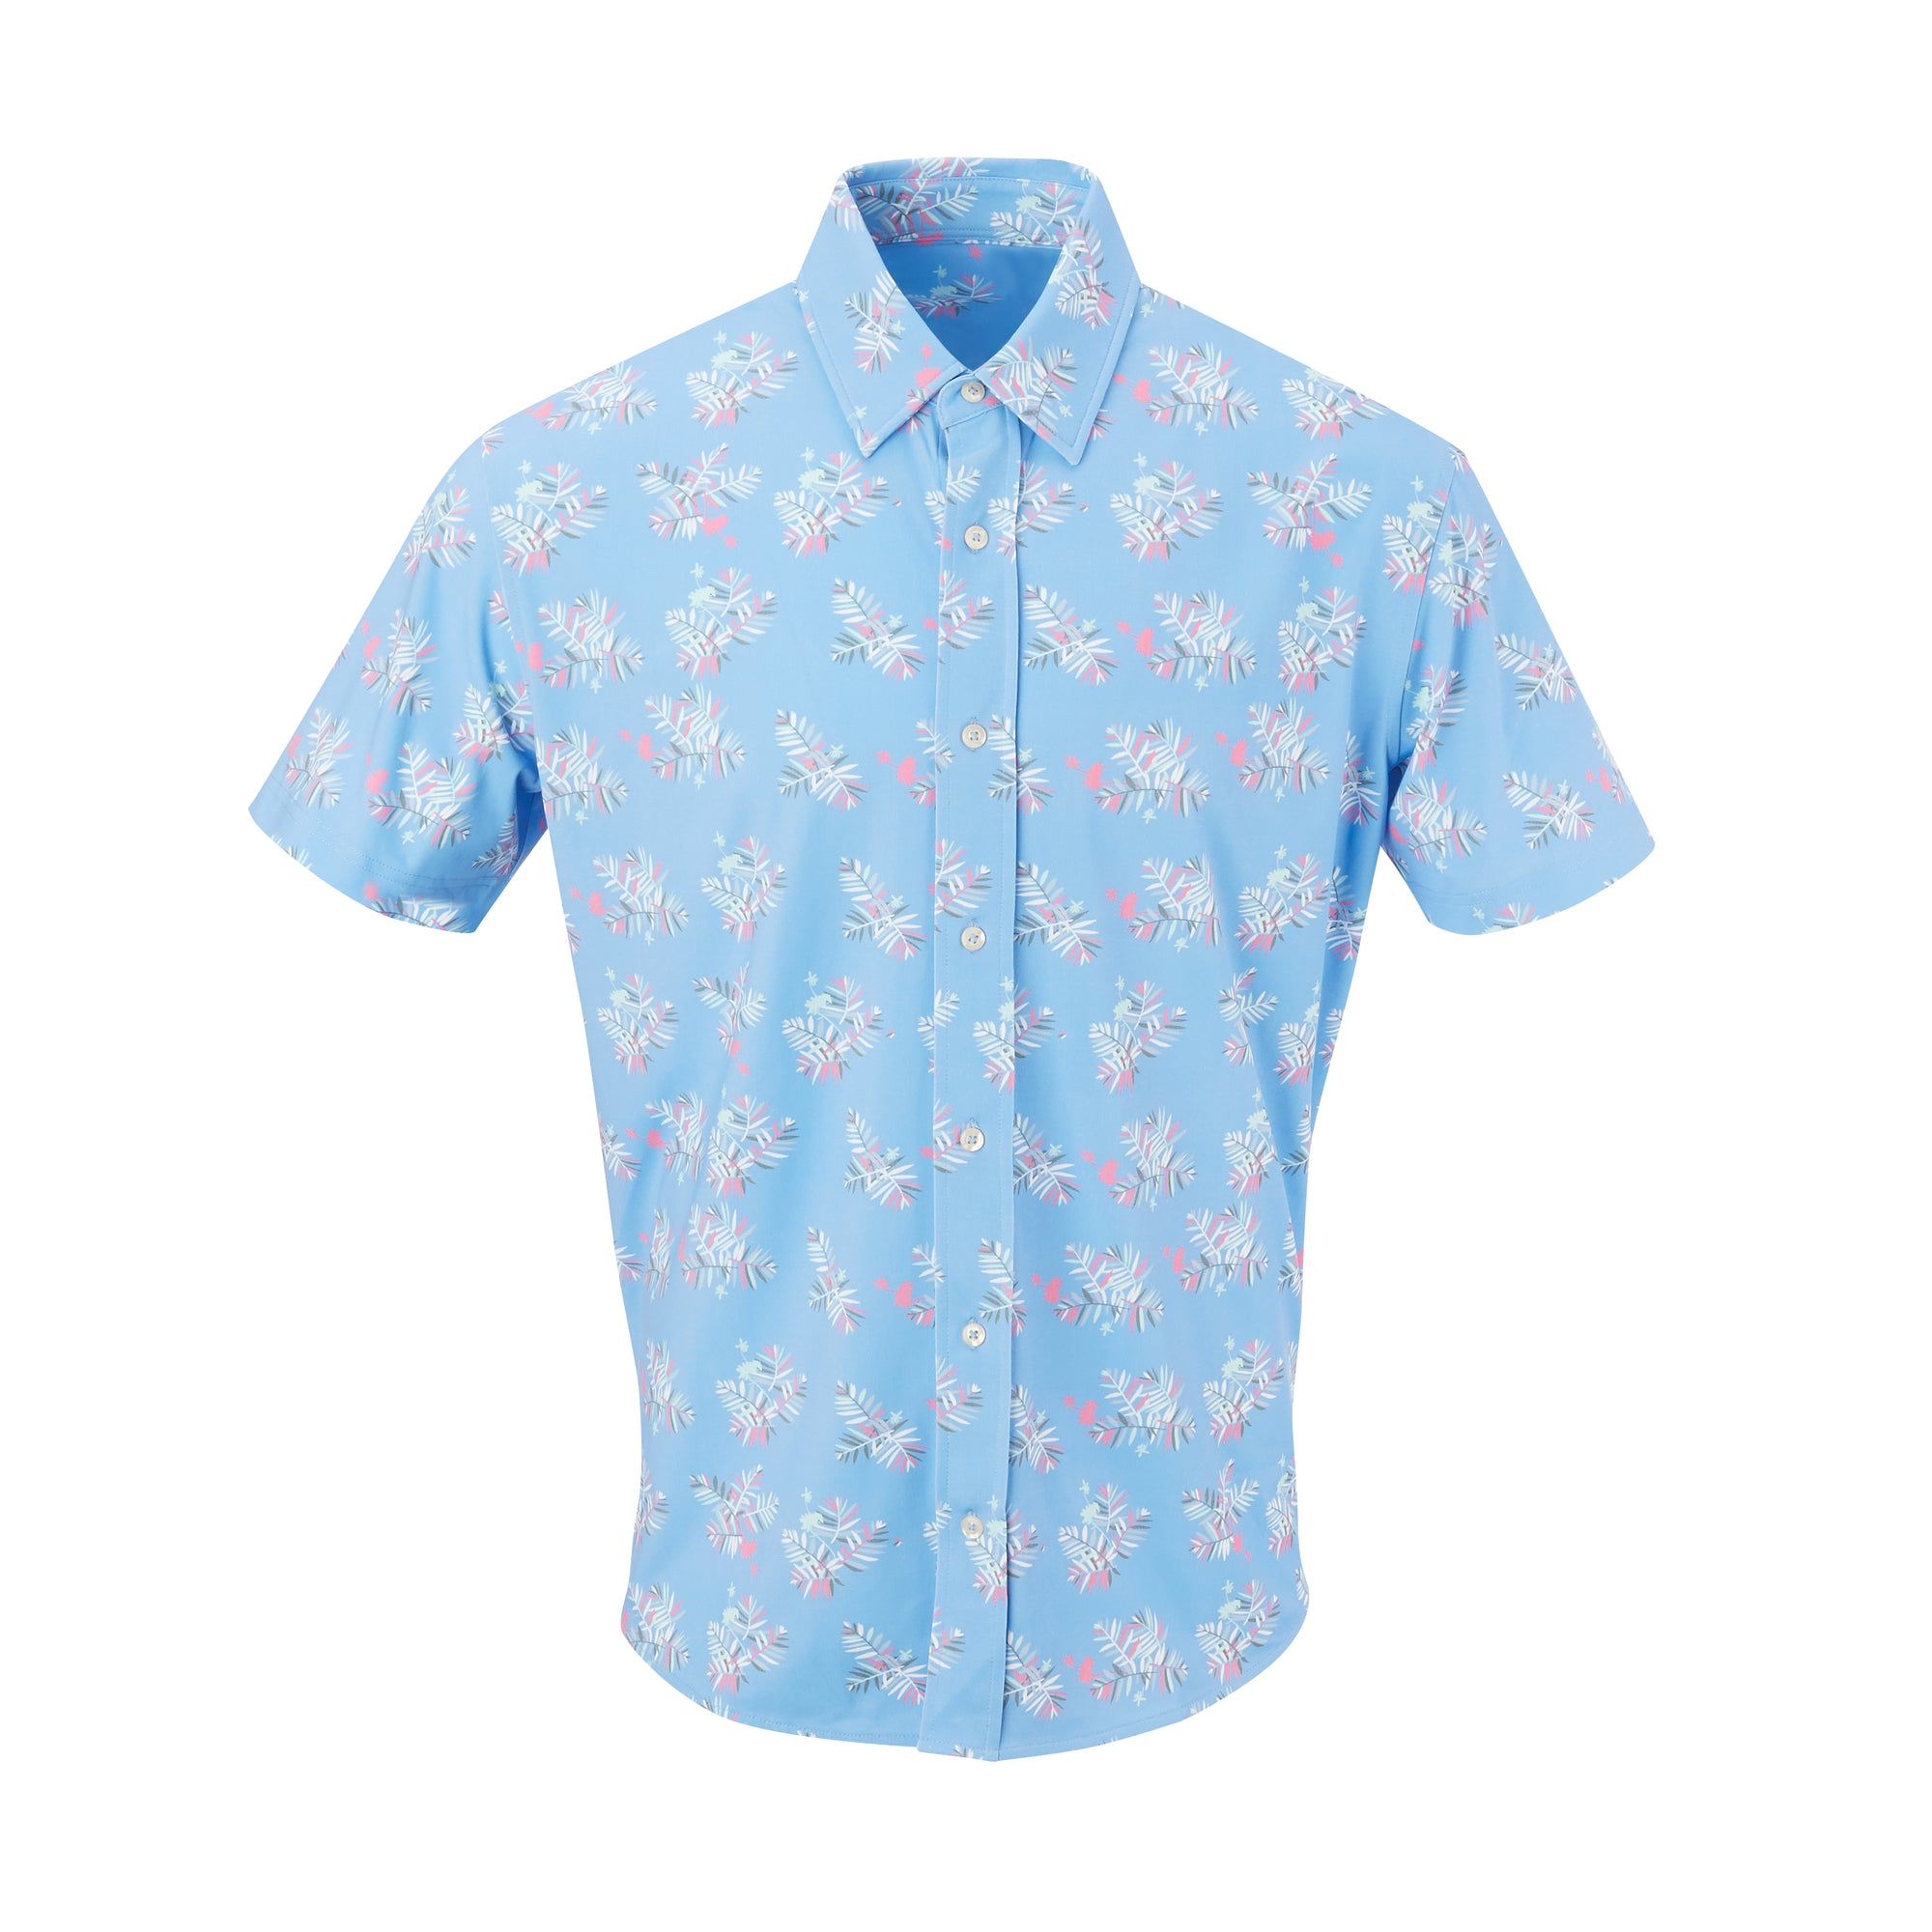 THE BOBBY LUXTEC BUTTON FRONT - Maui IS02440